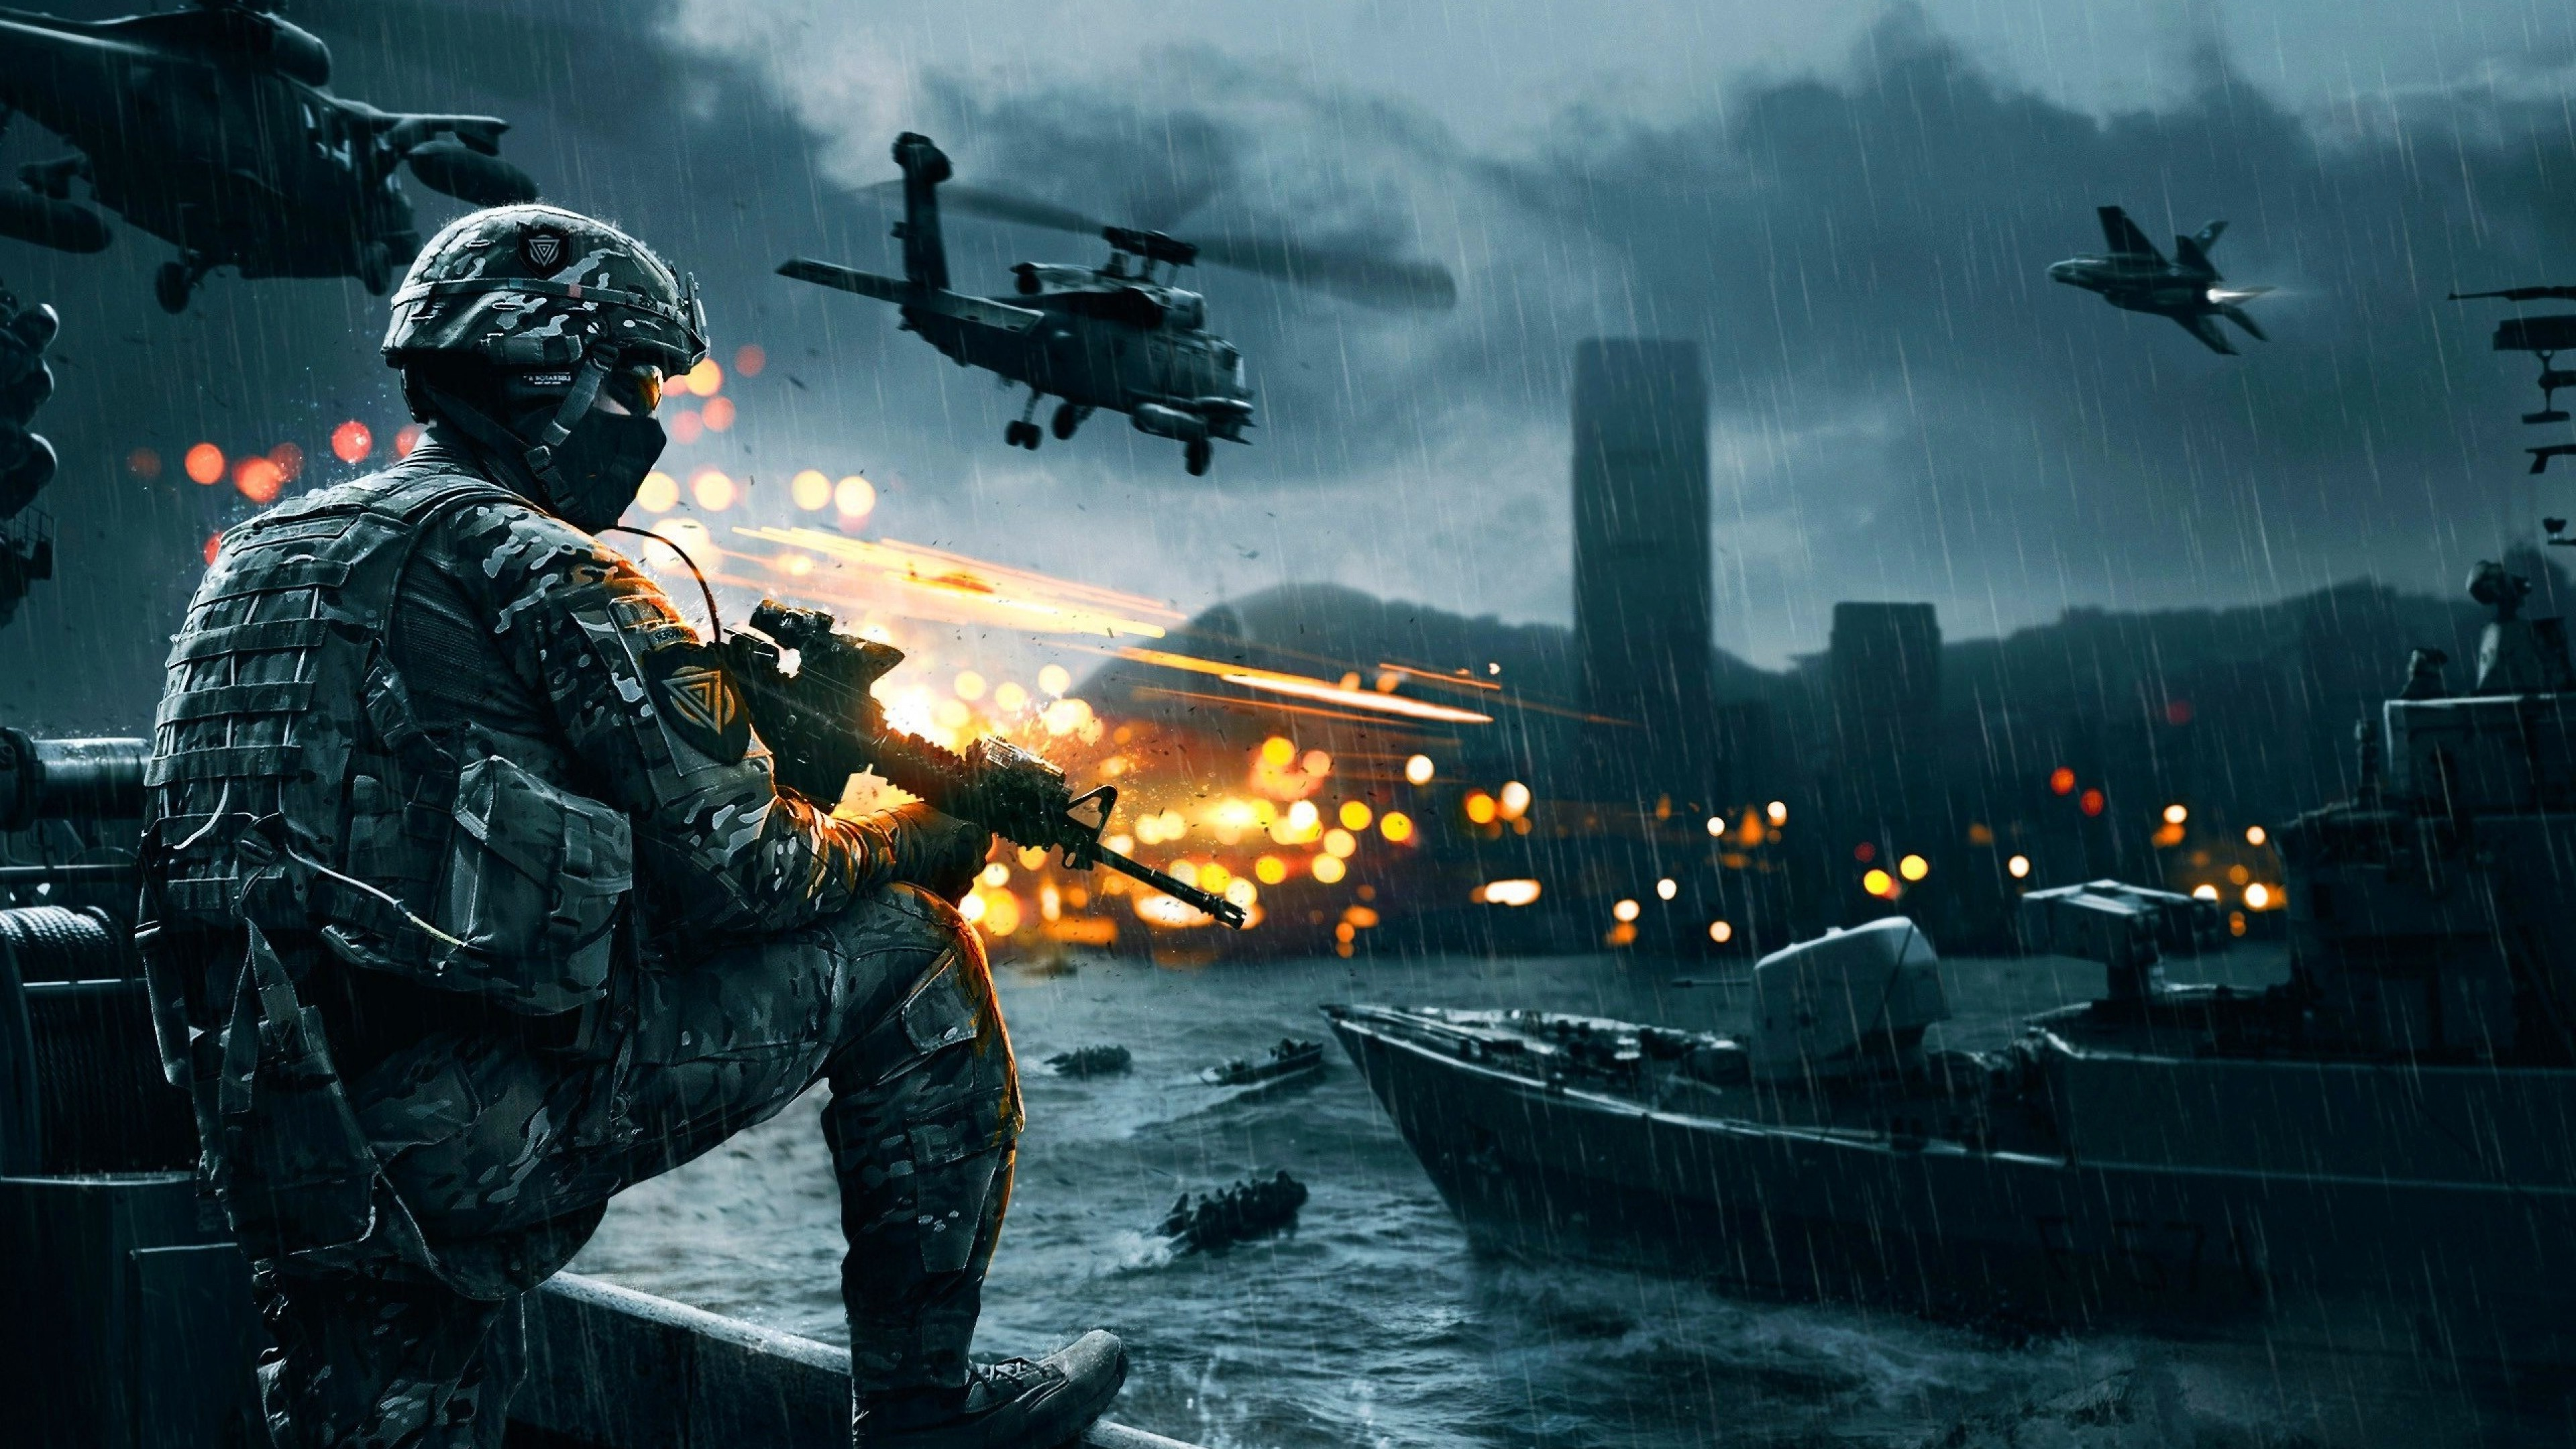 Wallpaper 4k Battlefield 4 Battlefield 4 Wallpapers Ea Games Wallpapers Games Wallpapers Pc Games Wallpapers Ps4 Games Wallpapers Xbox Games Wallpapers